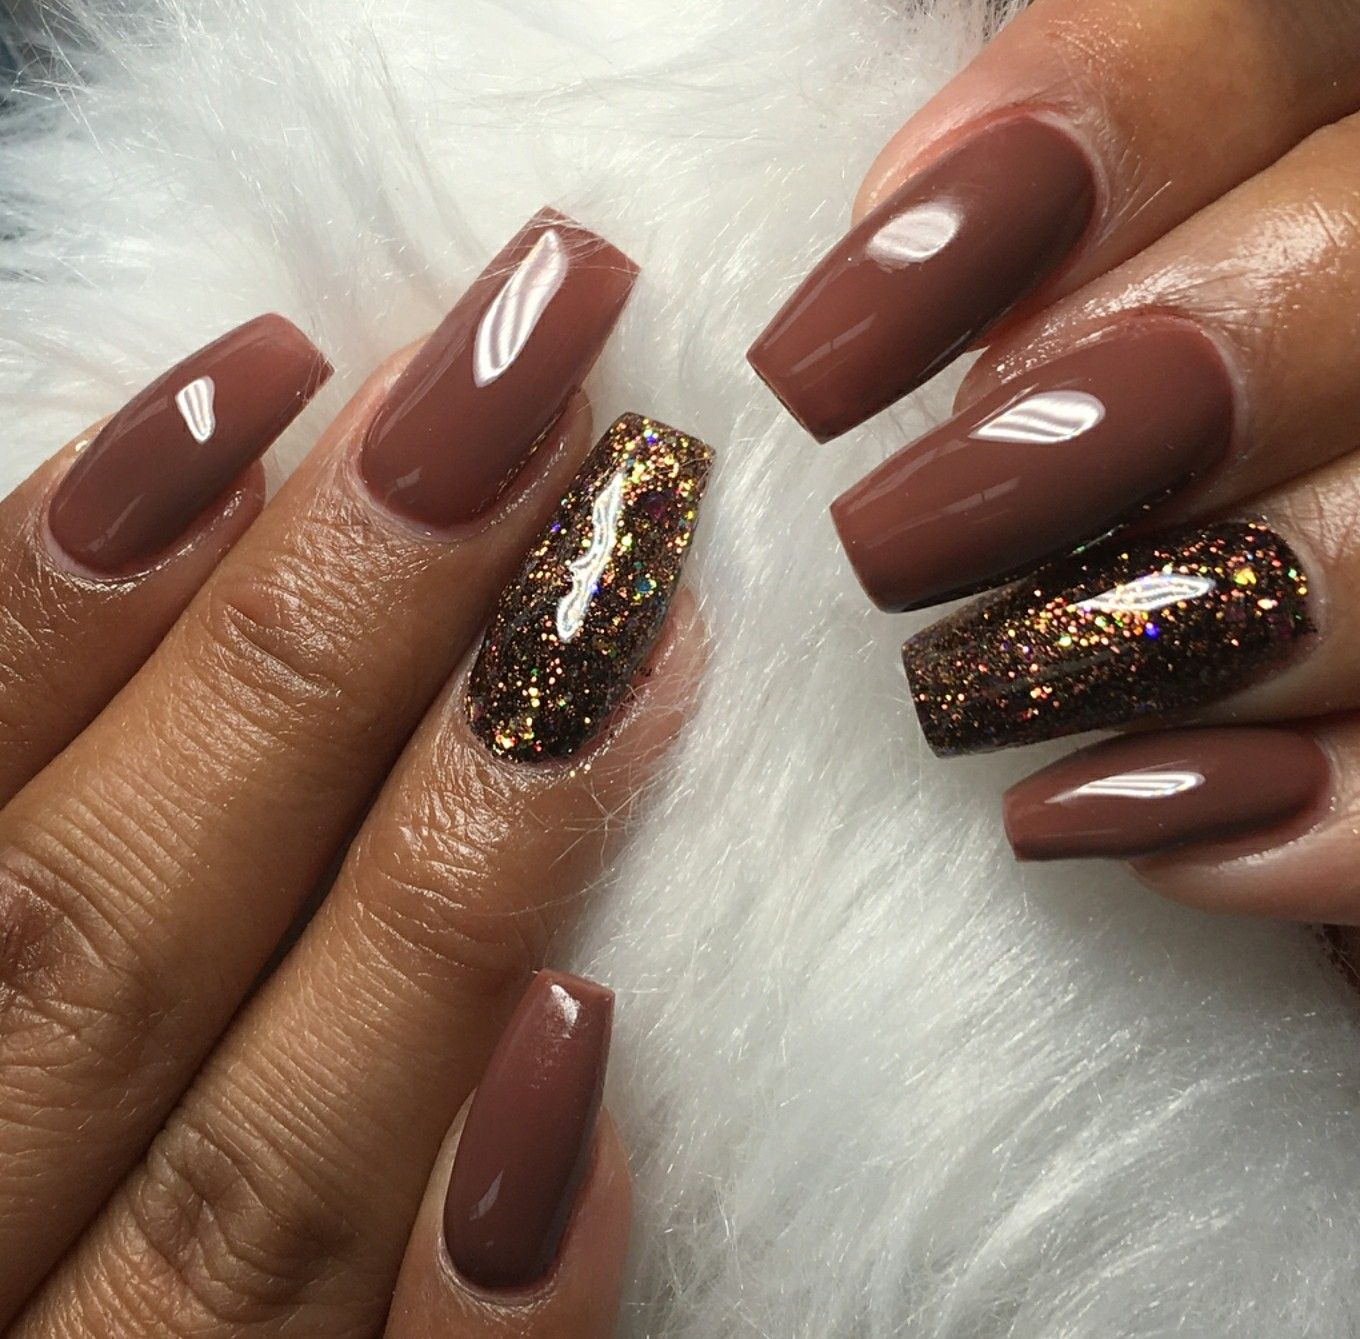 Brown and gold nails gold glitter nails acrylic nails gel nails